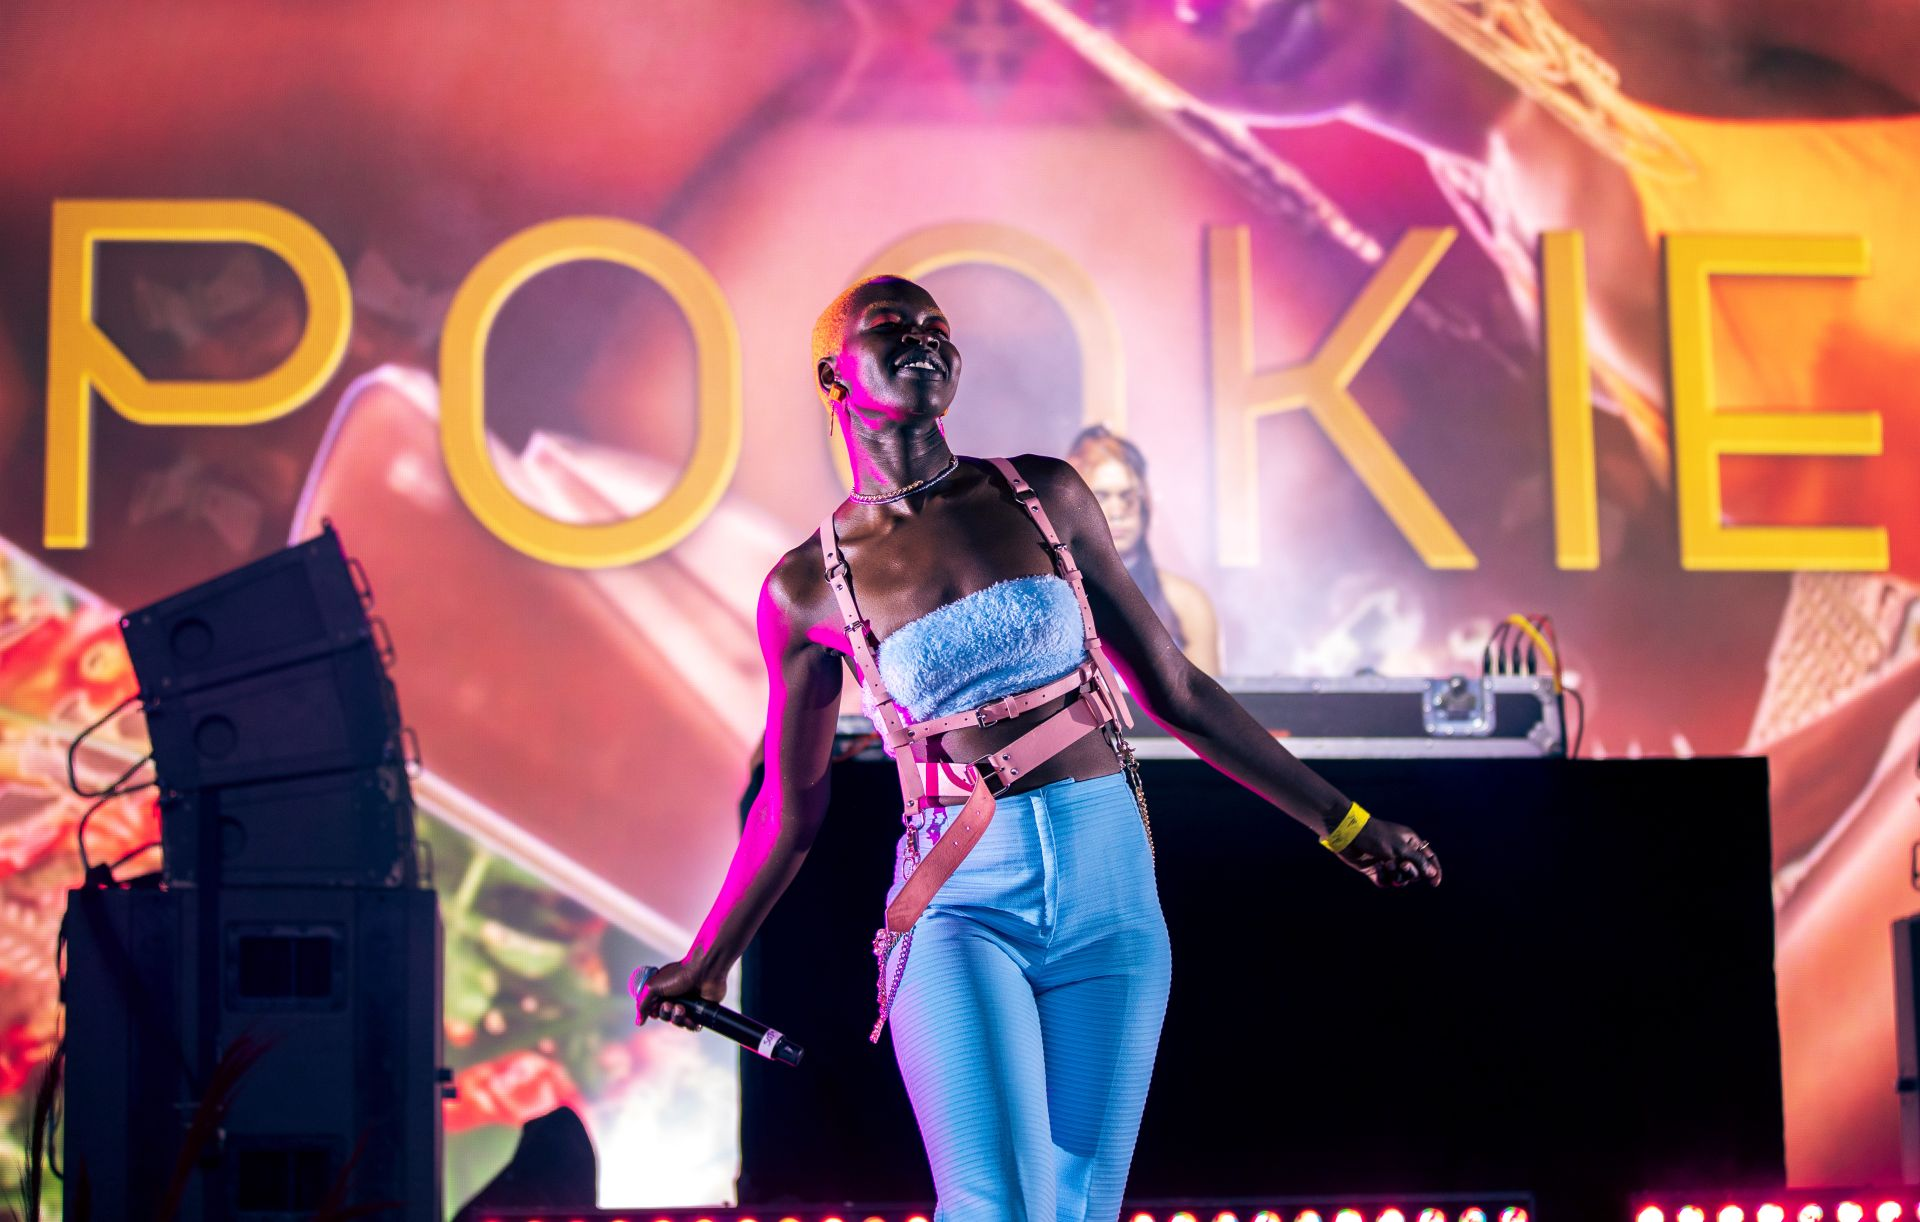 Image Credit: POOKIE performing as part of SorBaes presented by Soju Gang, Live at the Bowl, Arts Centre Melbourne 2021. Image: James Henry